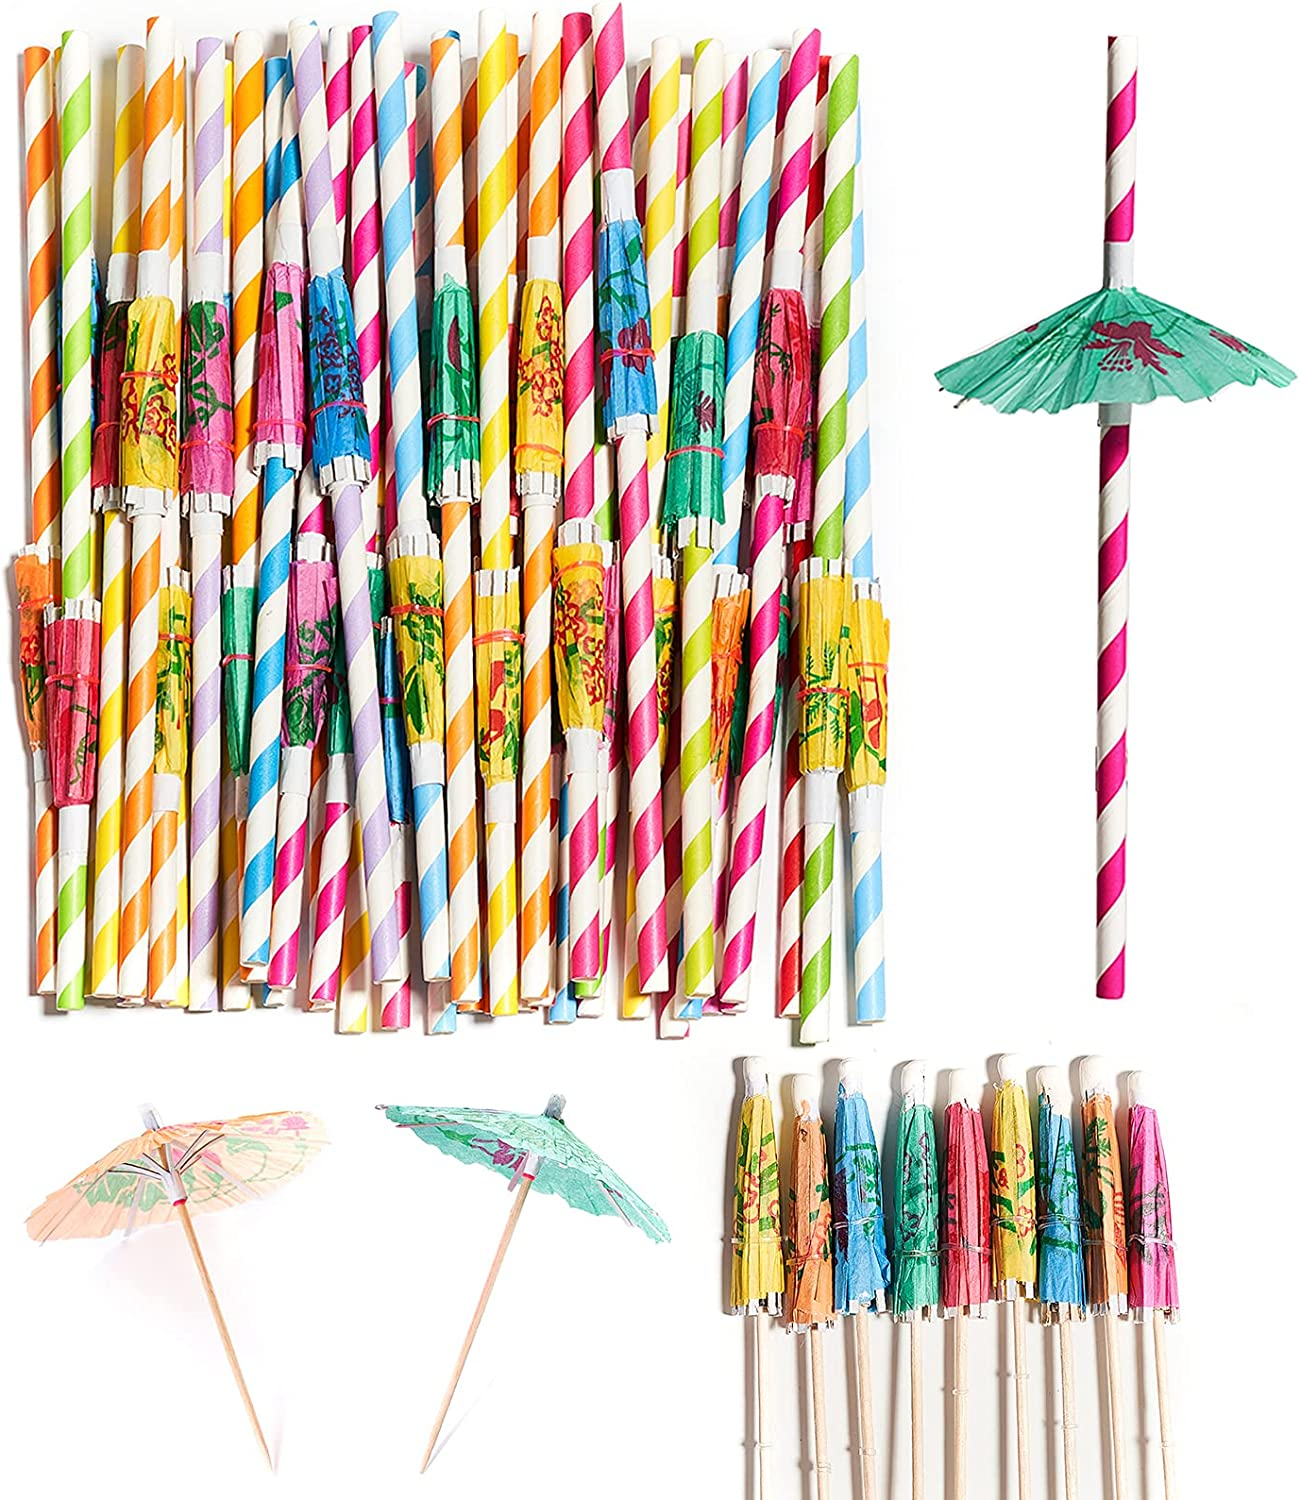 PartyWoo Paper Straws, 60 pcs Straws Drinking and Cocktail Picks Umbrellas, Drink Straws, Cocktail Straws for Luau Birthday Party Decorations, Summer Party, Hawaiian Party, Tropical Party Supplies